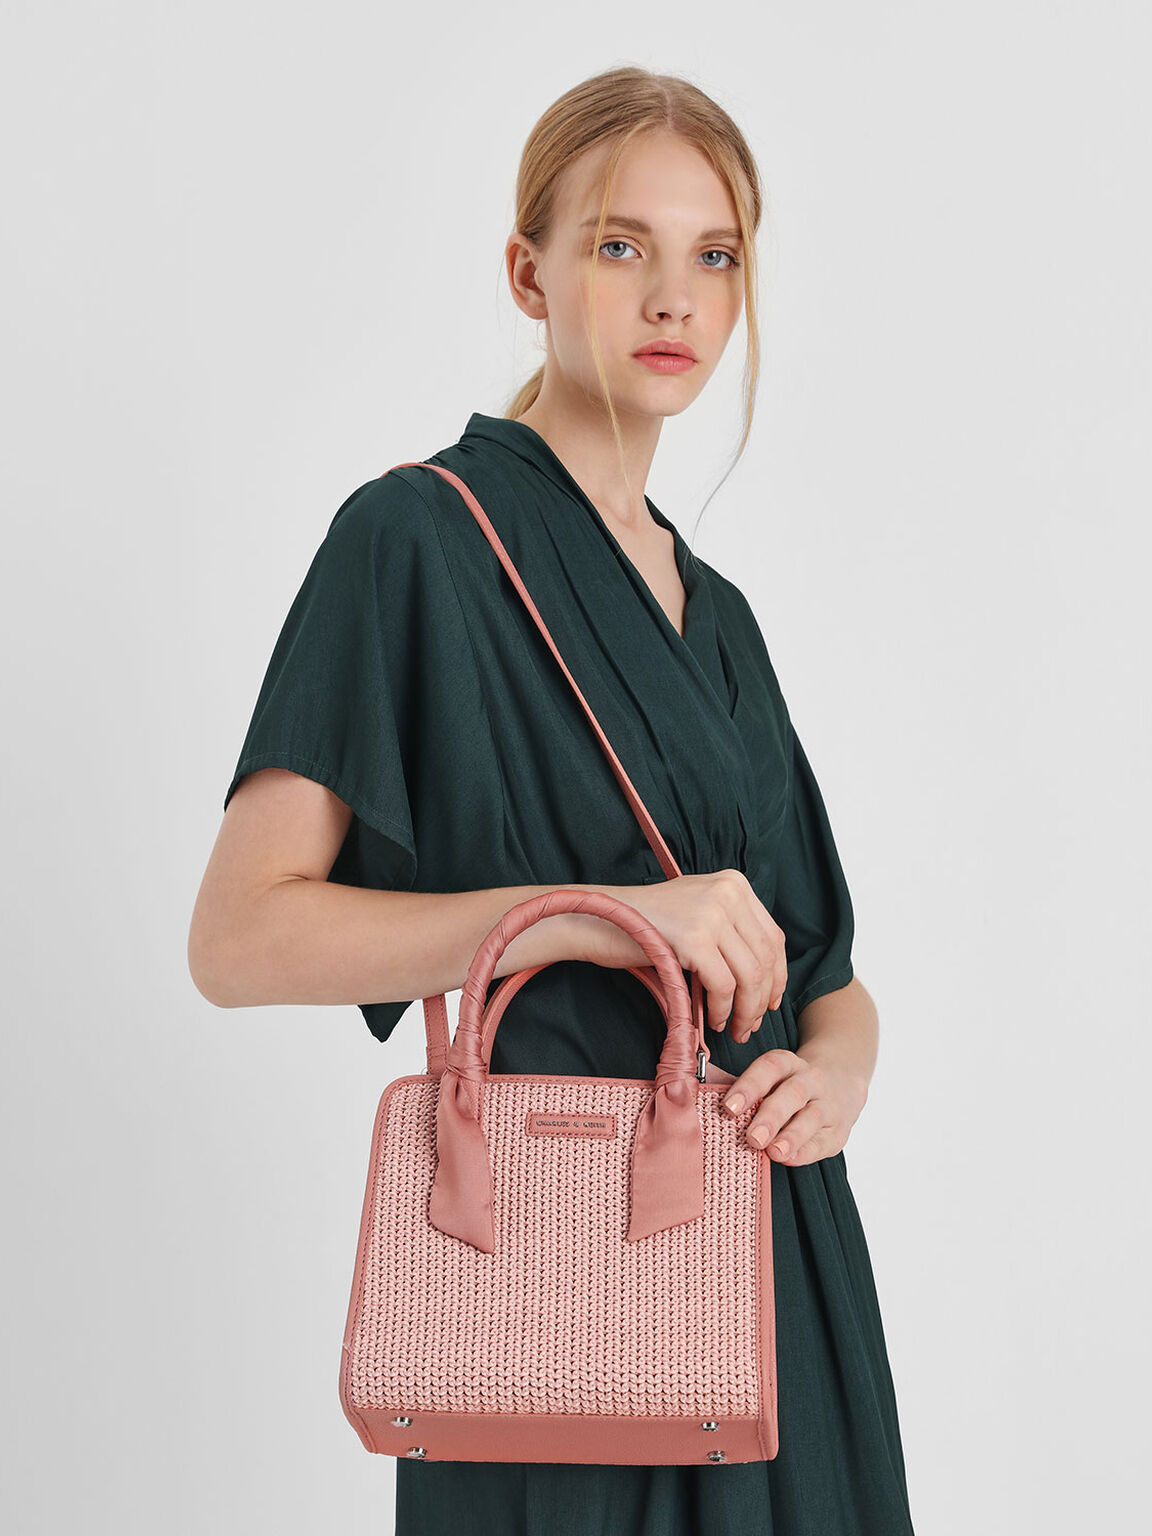 Satin Scarf Wrapped Woven Bag, Coral Pink, hi-res